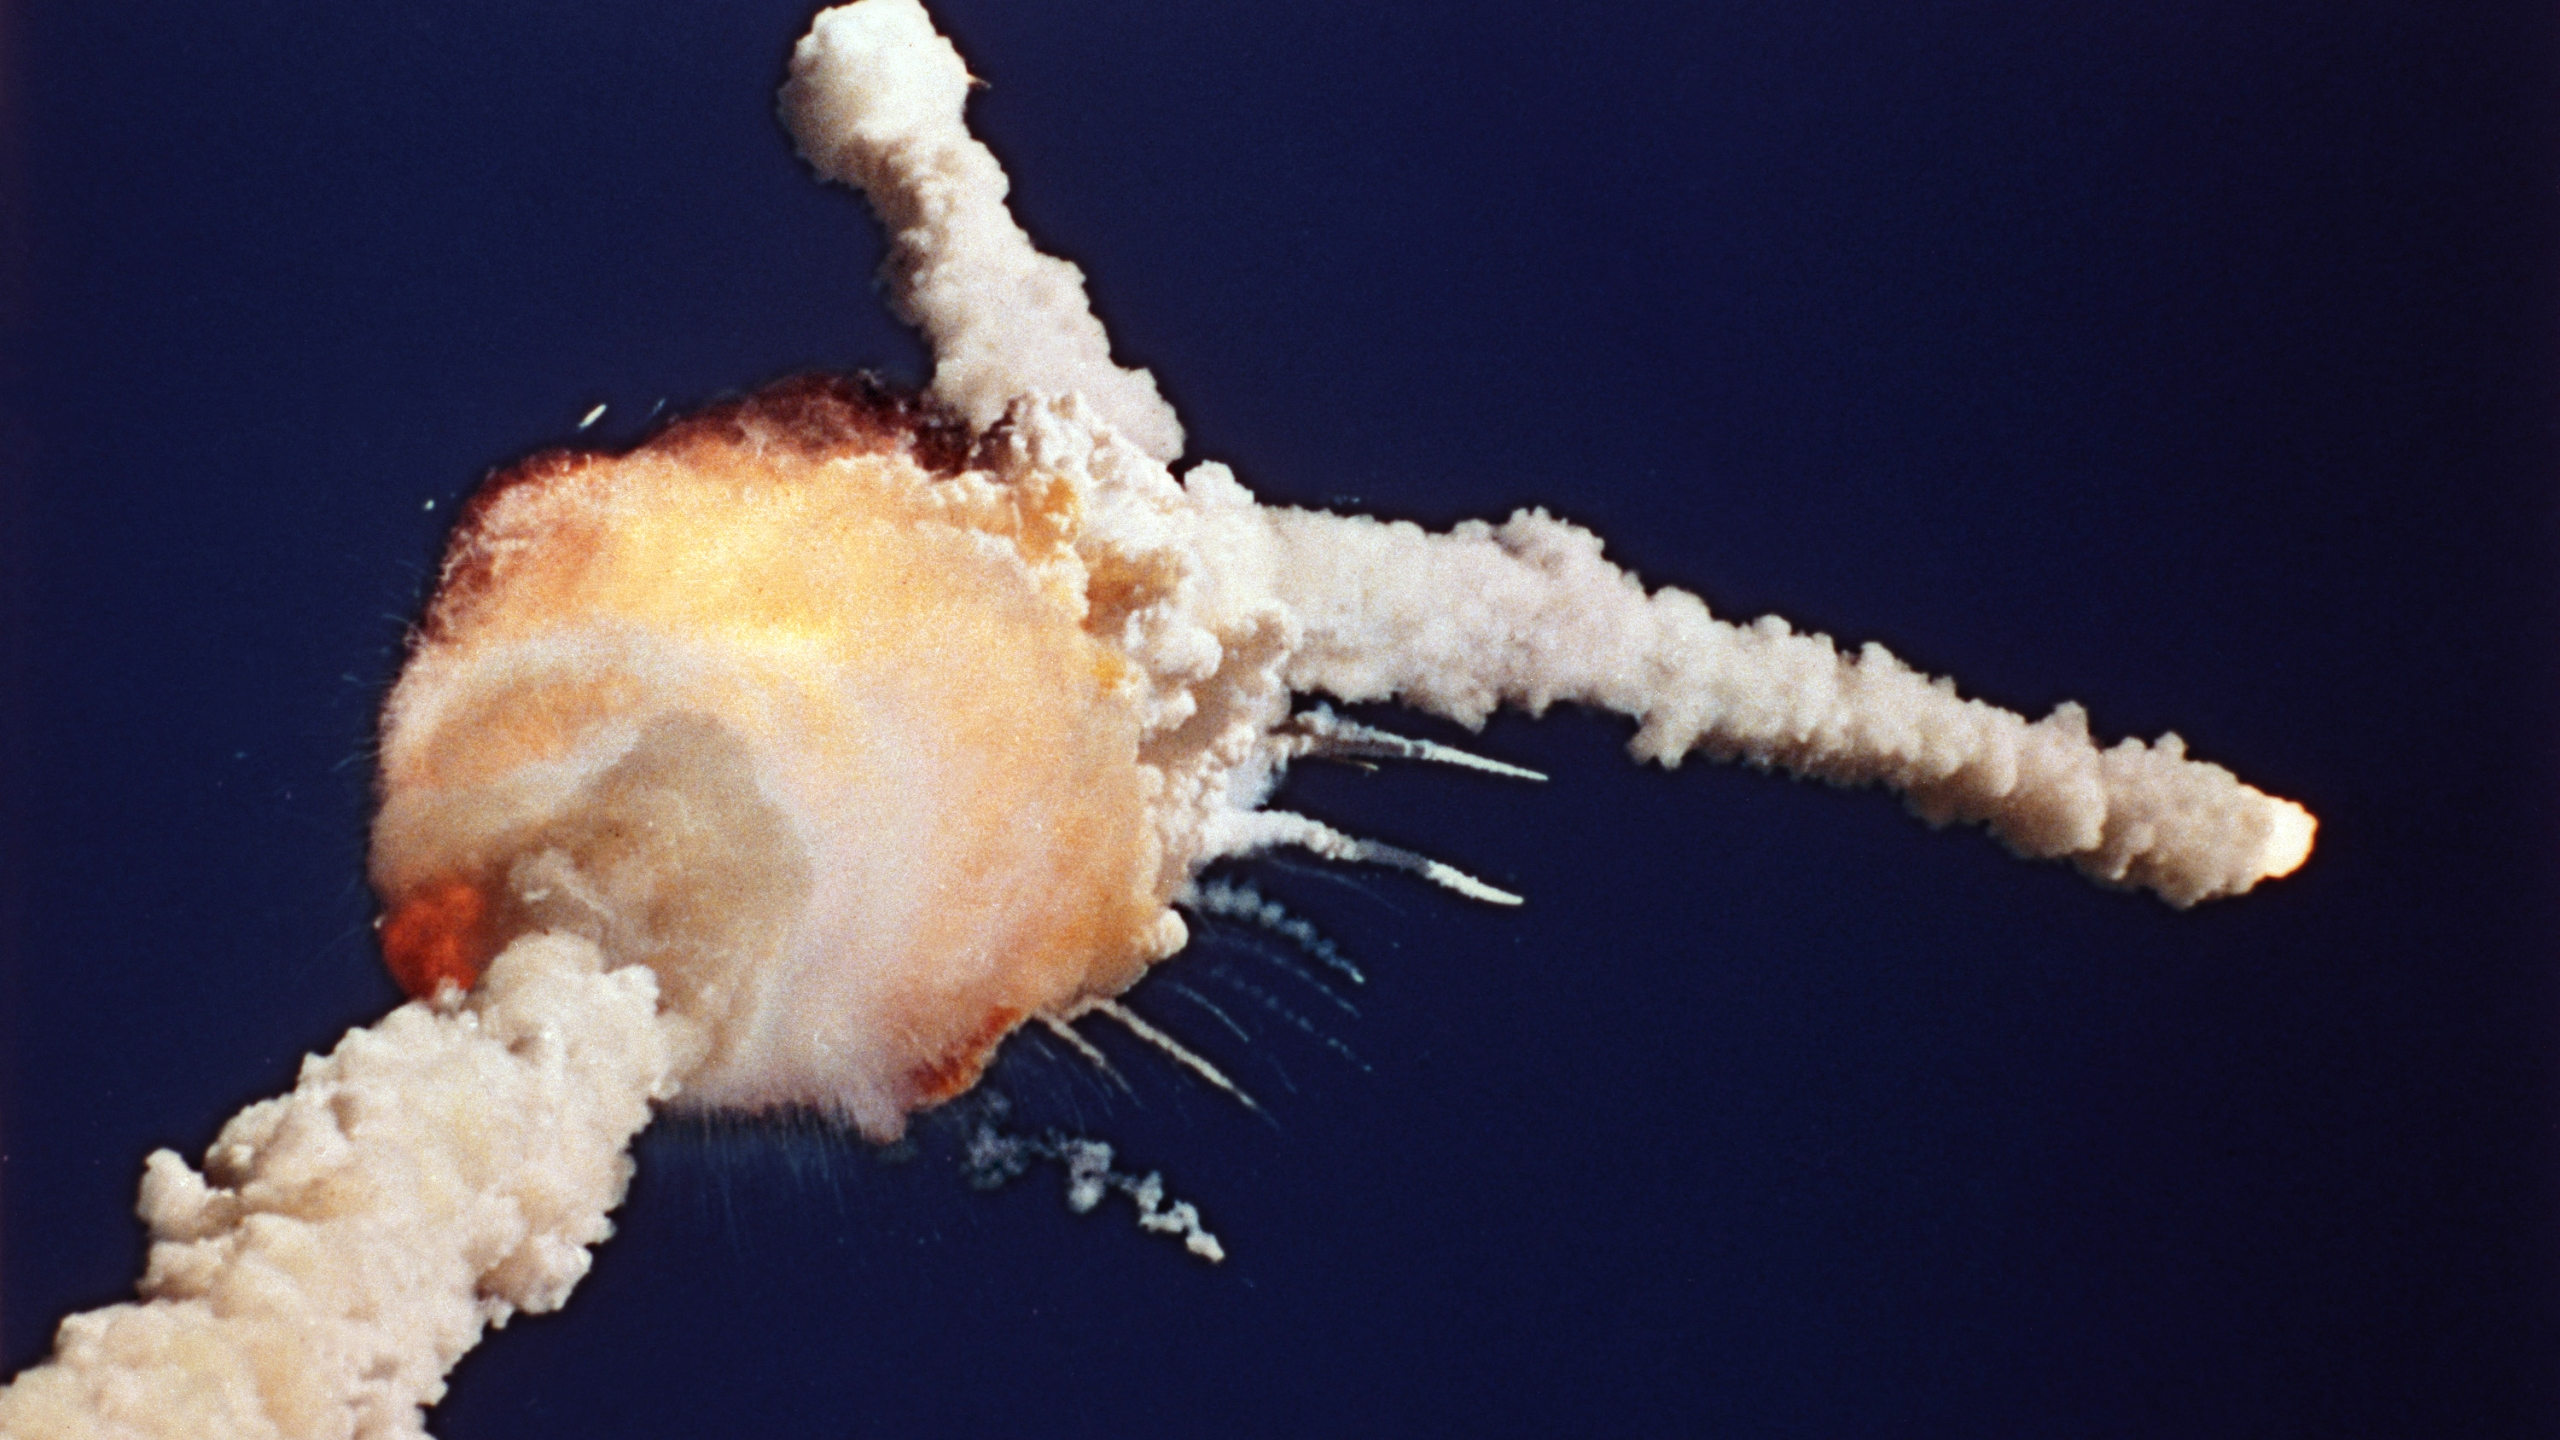 Space Shuttle Challenger_103595